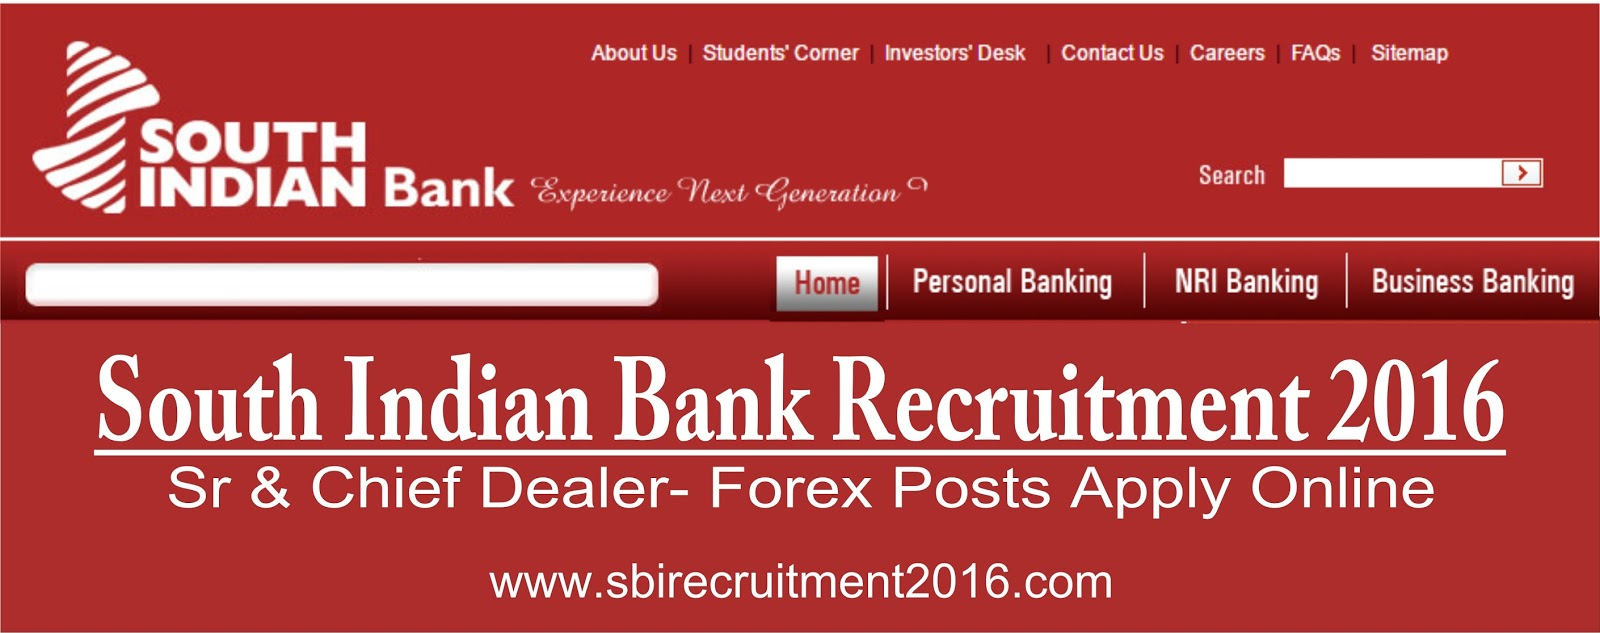 Forex careers in india